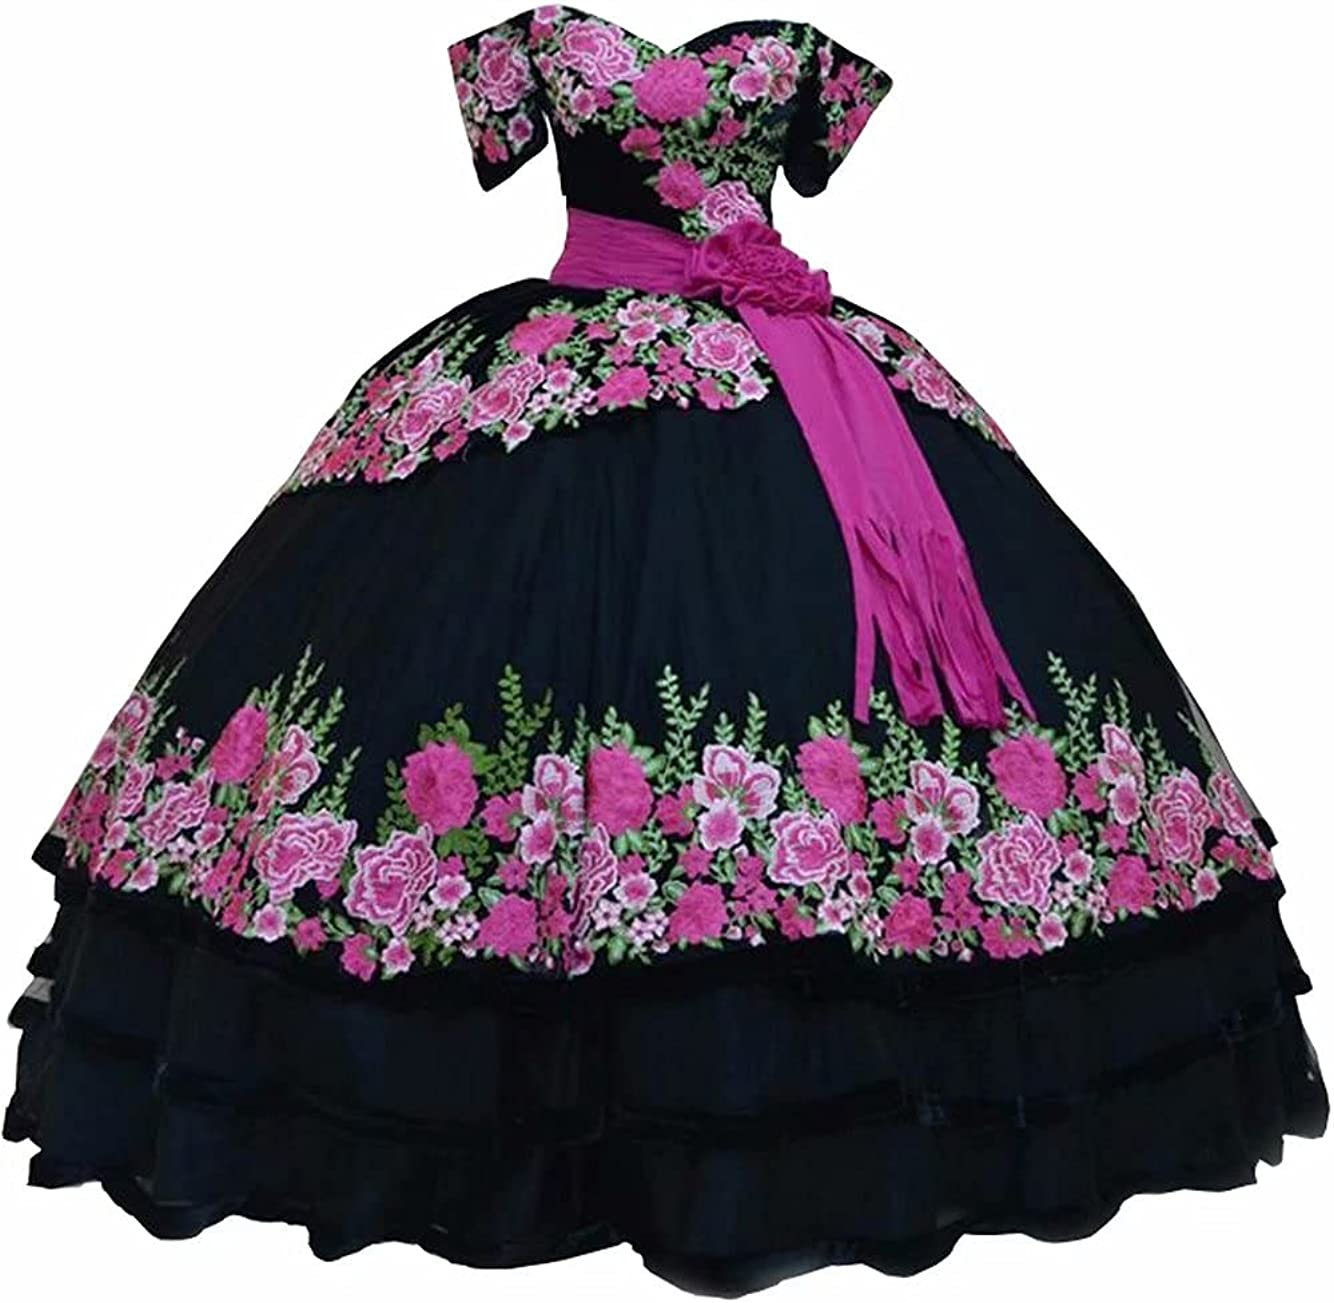 Printed Floral Appliques Quinceanera Dresses Charro Ball Gown Off Shoulder Sweet 15 Girls 2021